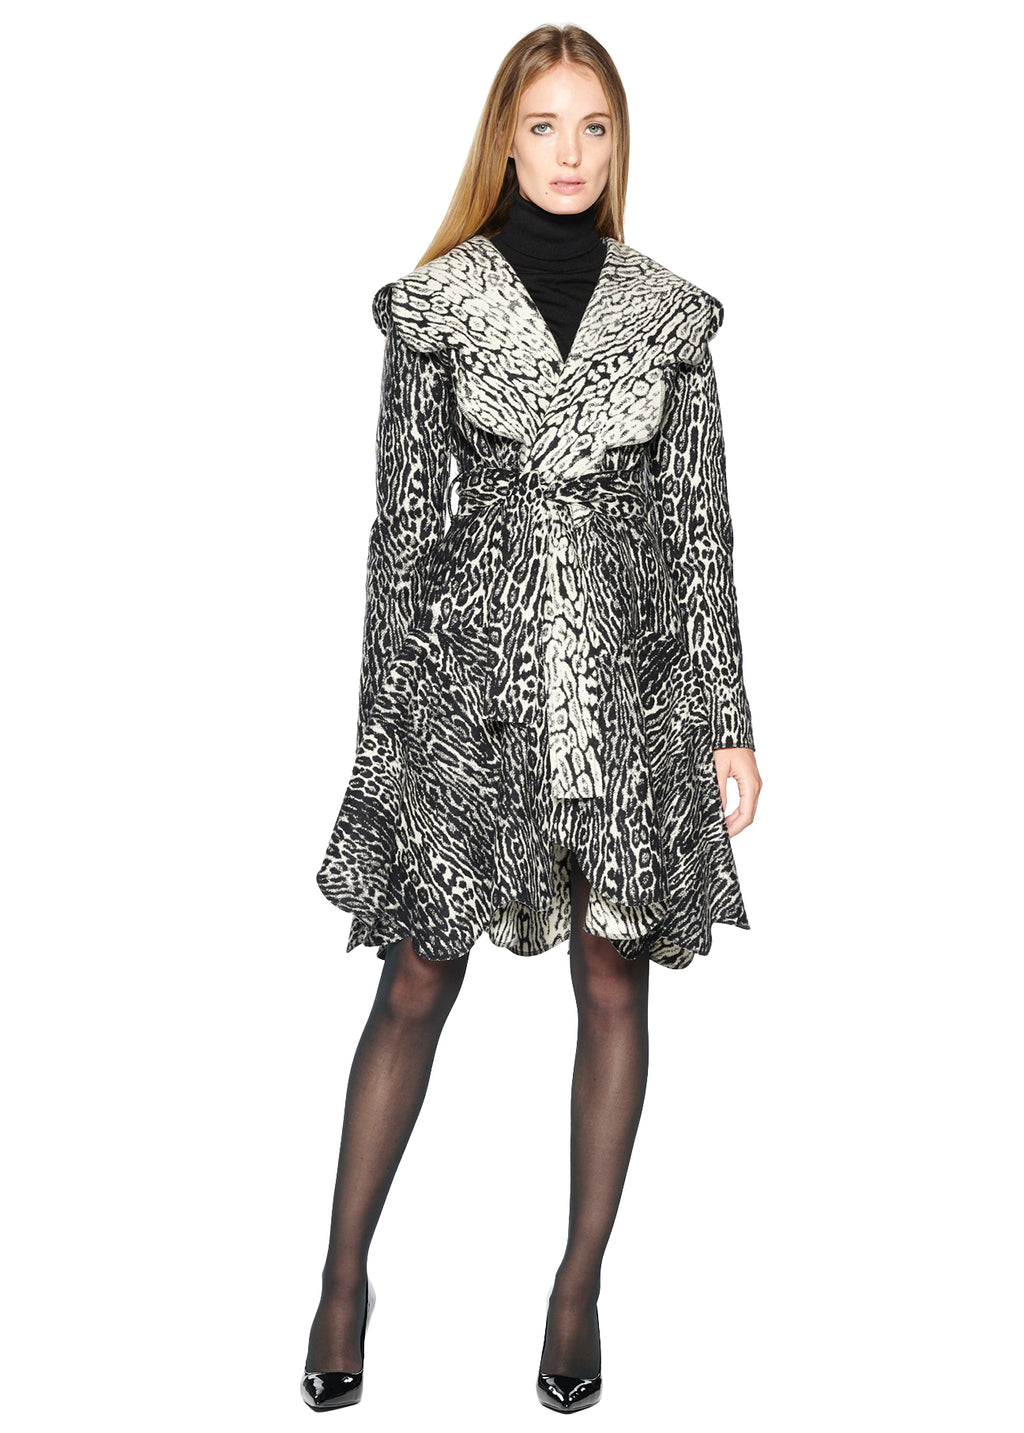 BLACK AND WHITE LEOPARD SCALLOP EDGE COAT - Women's Jackets & Coats - Libertine